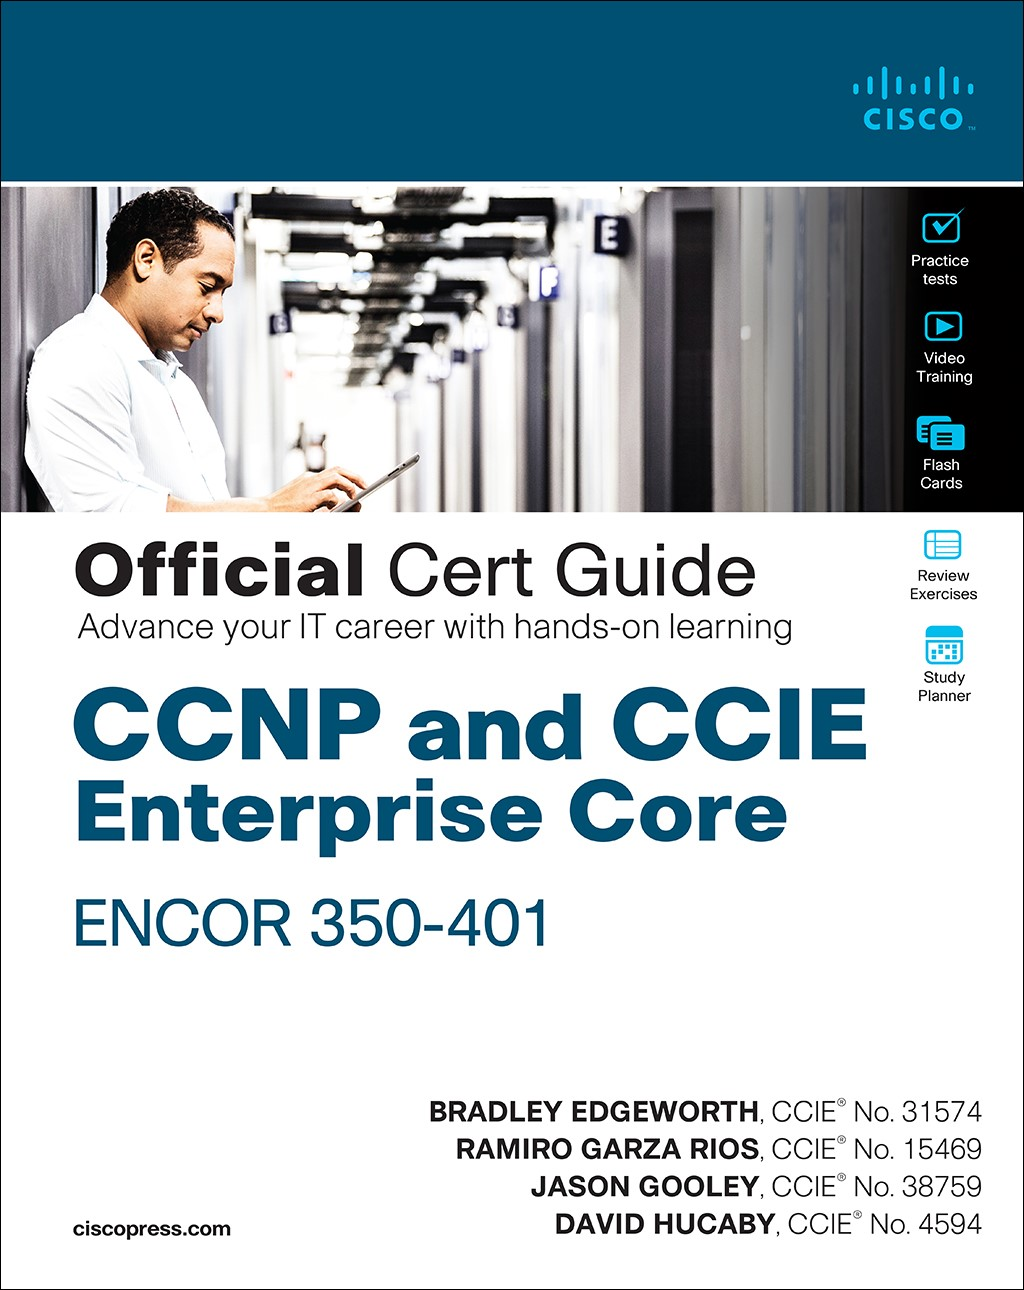 CCNP and CCIE Enterprise Core ENCOR 350-401 Official Cert Guide (Rough Cuts)